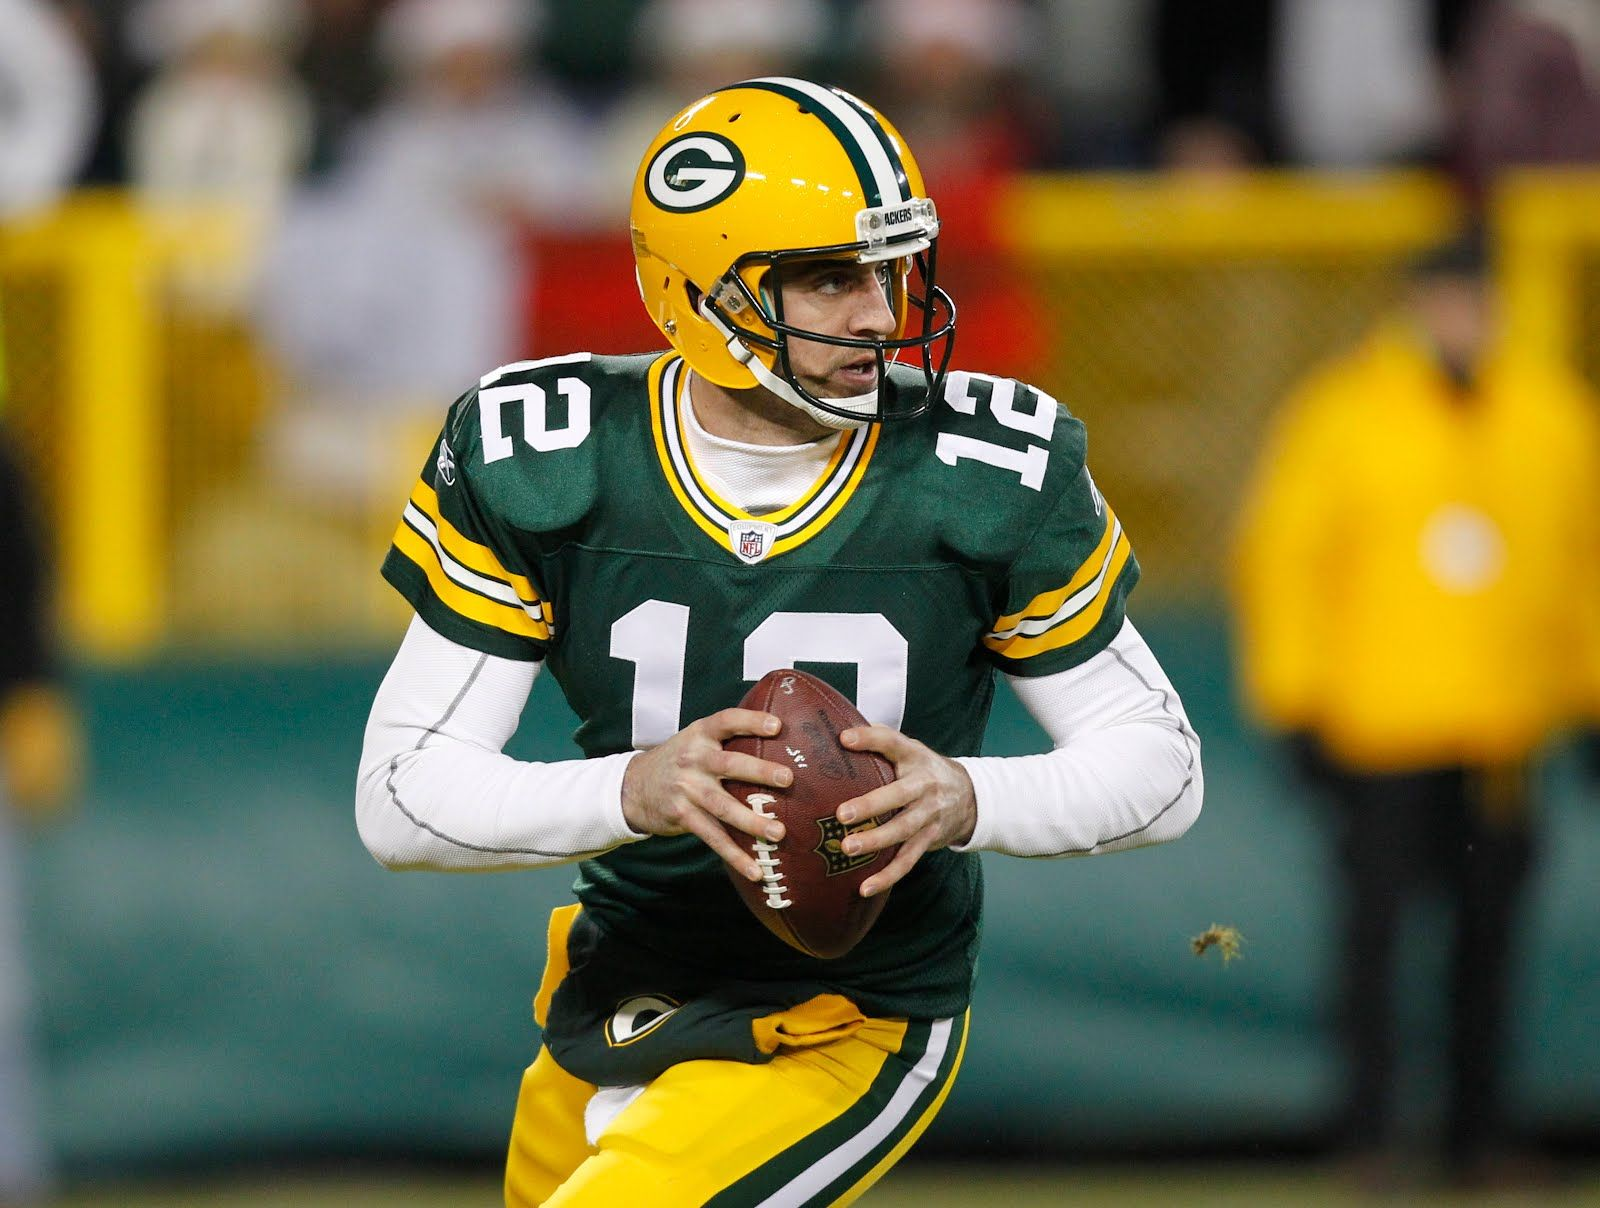 Aaron Rodgers Quot Frozen Tundraquot Wallpaper Greenbaypackers 800 600 Aaron Rodgers Wallp Aaron Rodgers Green Bay Packers Wallpaper Green Bay Packers Funny